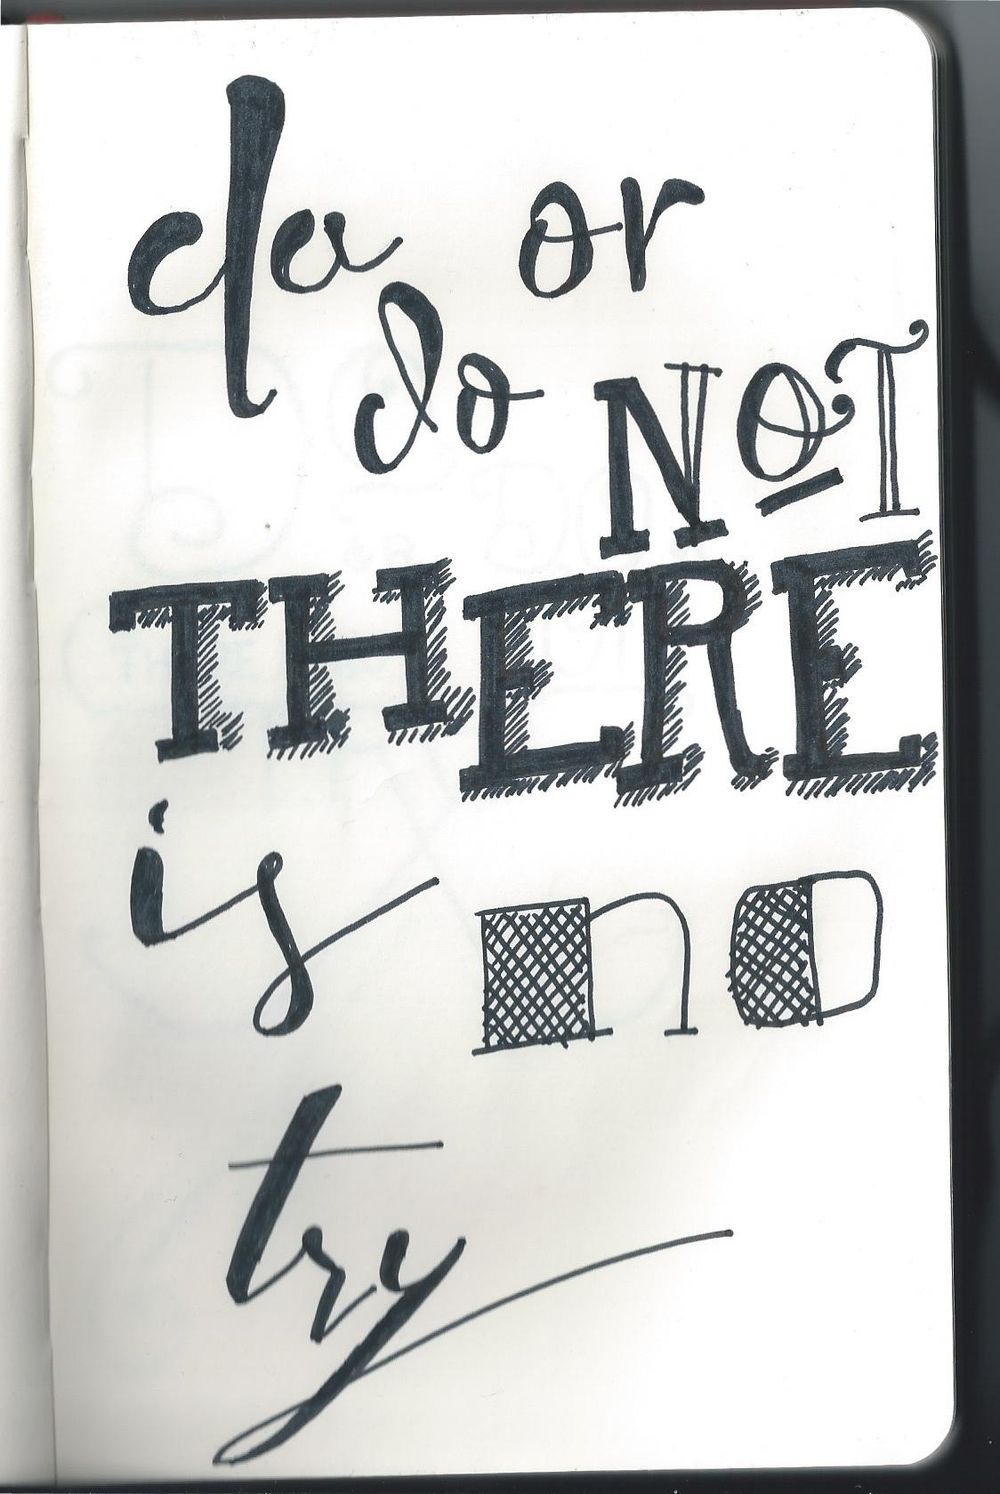 Do or do not, there is no try. - image 10 - student project